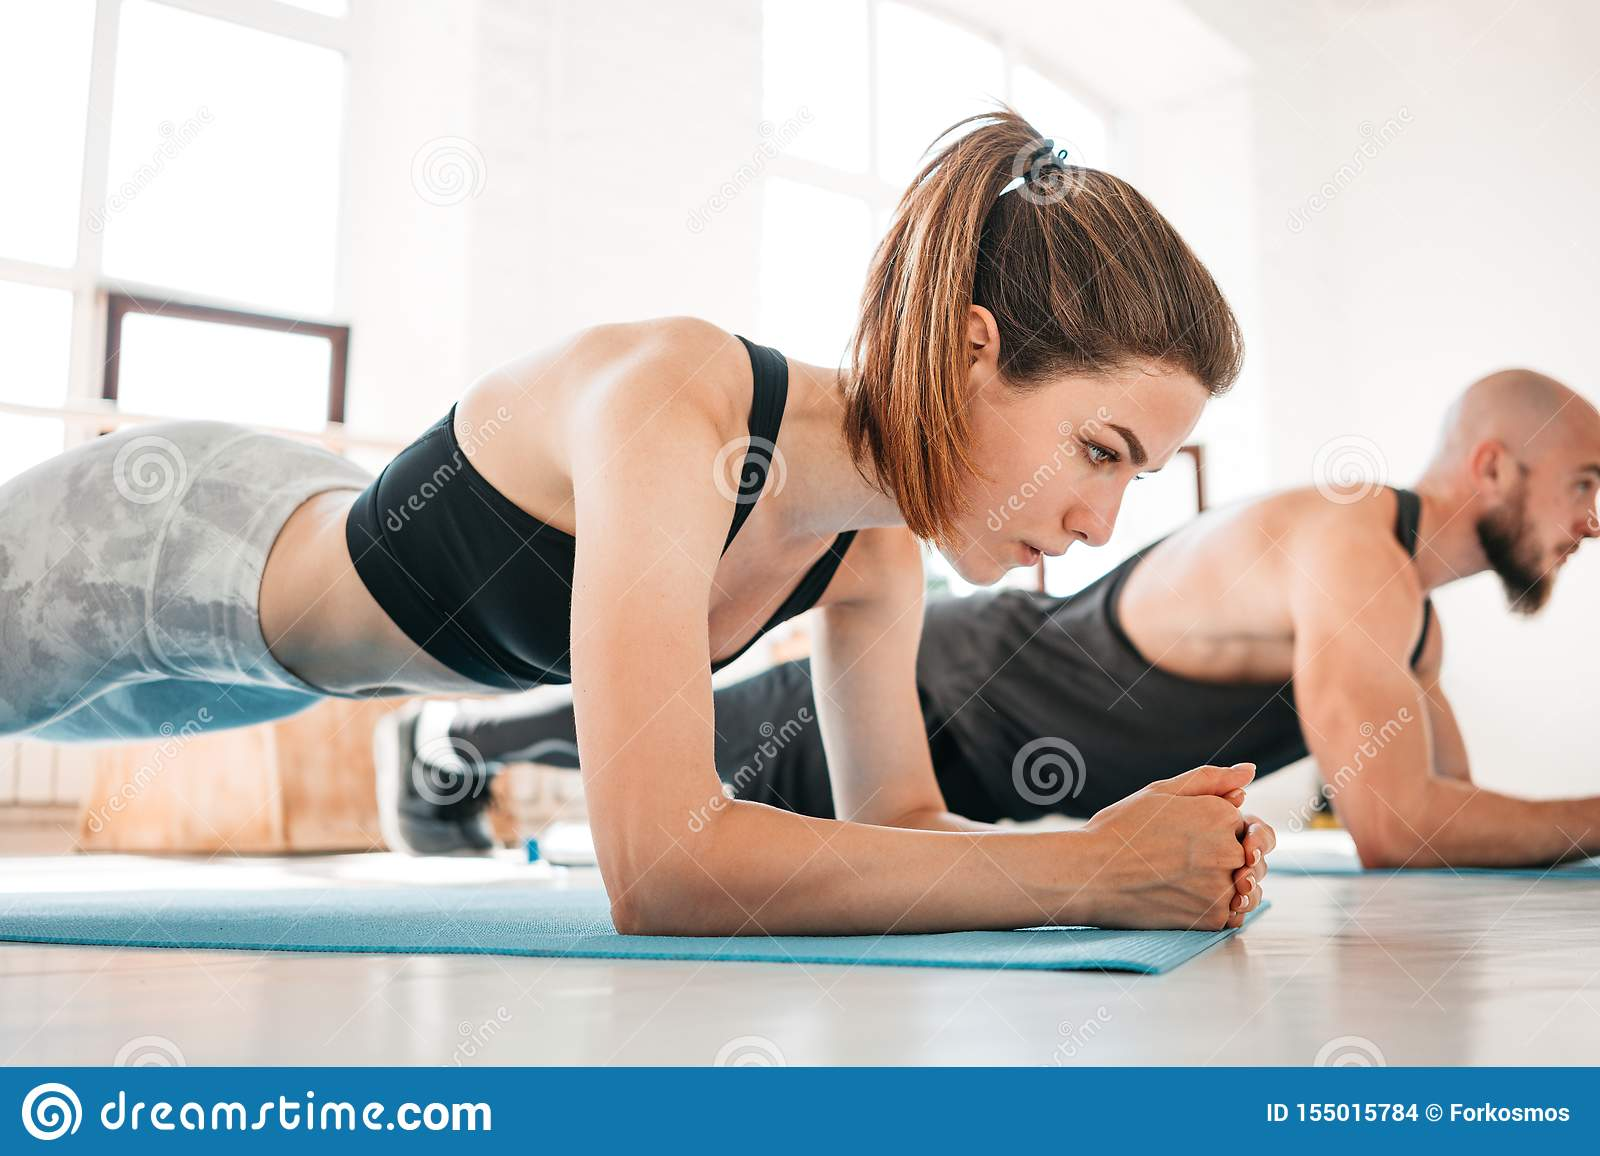 Fit Man And Woman Doing Abs Exercises Together Stock Photo Image Of Coach Health 155015784 Side view of disabled sportswoman with prosthesis doing sit ups woman in swimsuit with perfect abs, fit body. https www dreamstime com fit man woman doing abs exercises together people working out gym fit men women doing abs exercises together image155015784